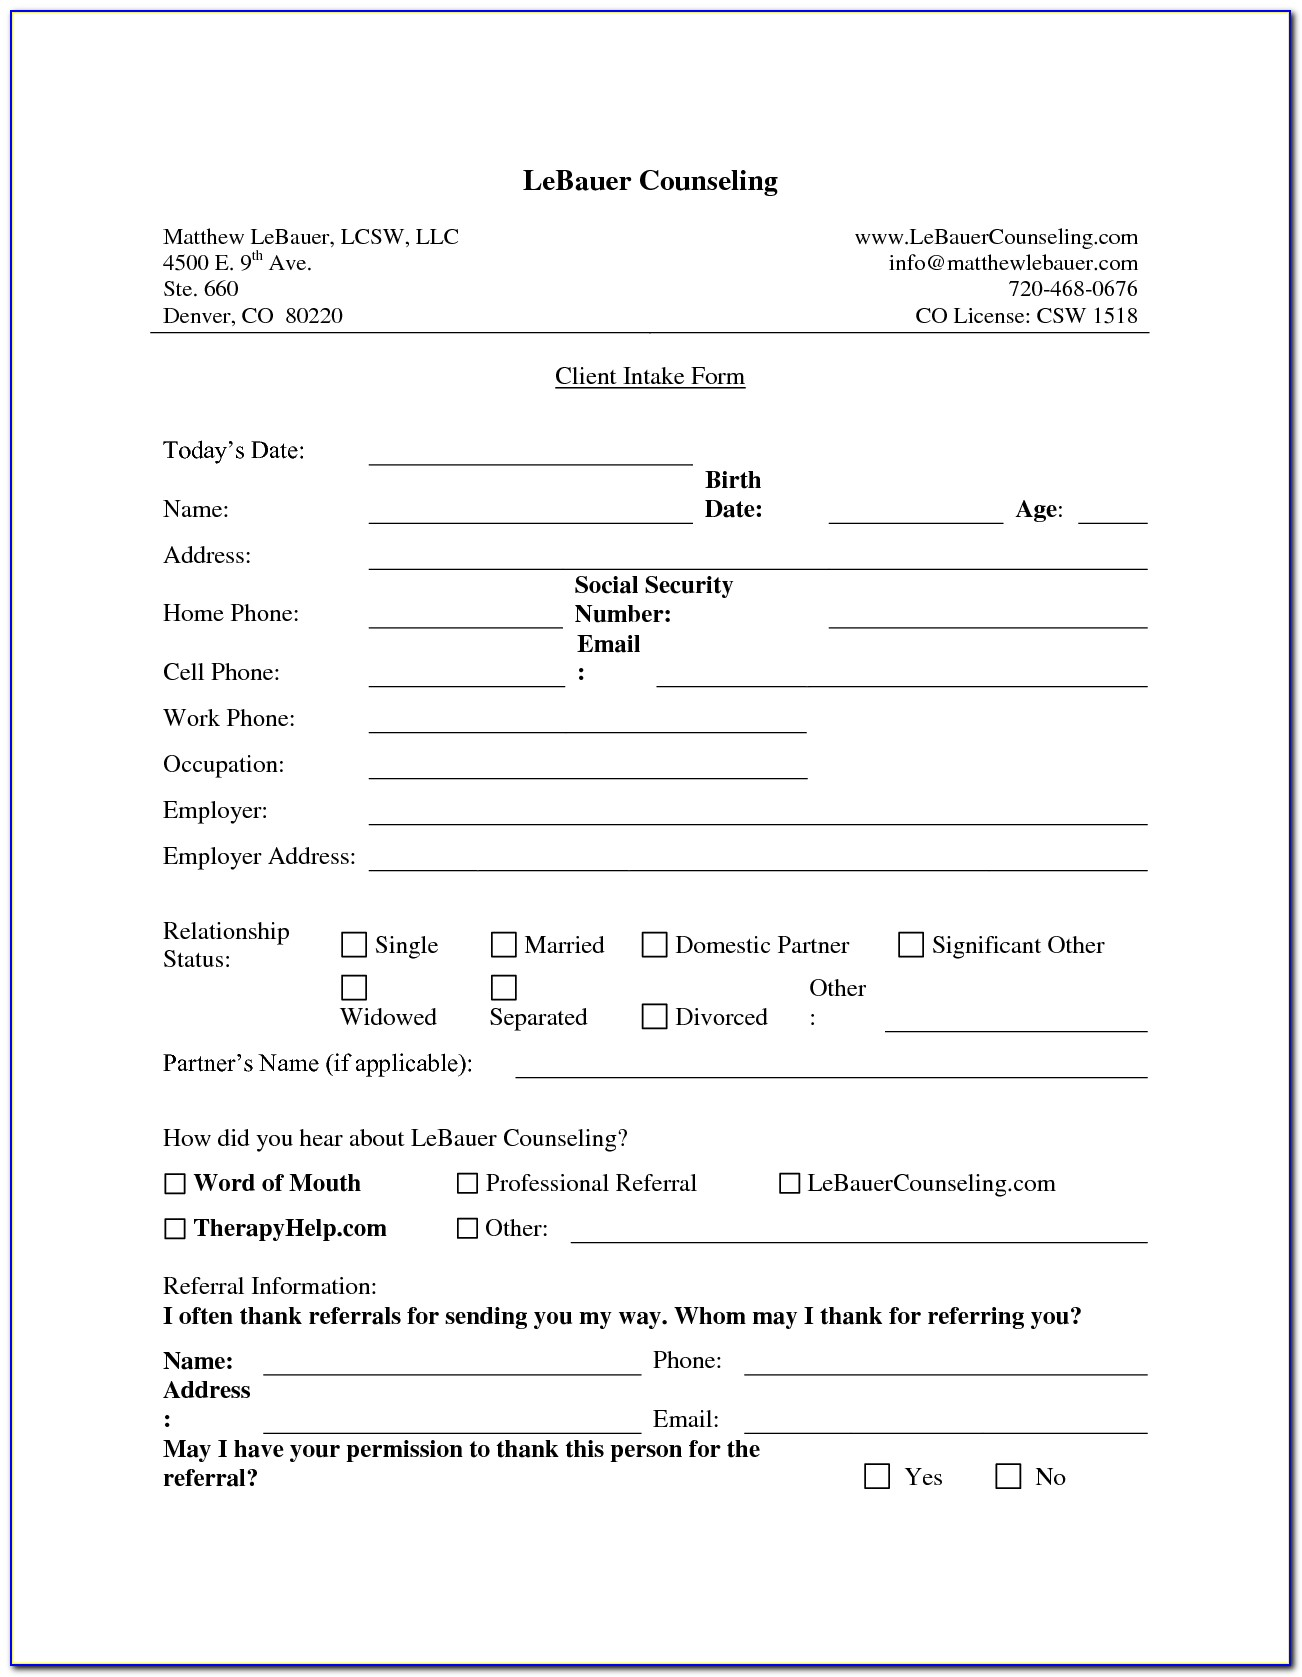 Real Estate Agent Client Intake Form